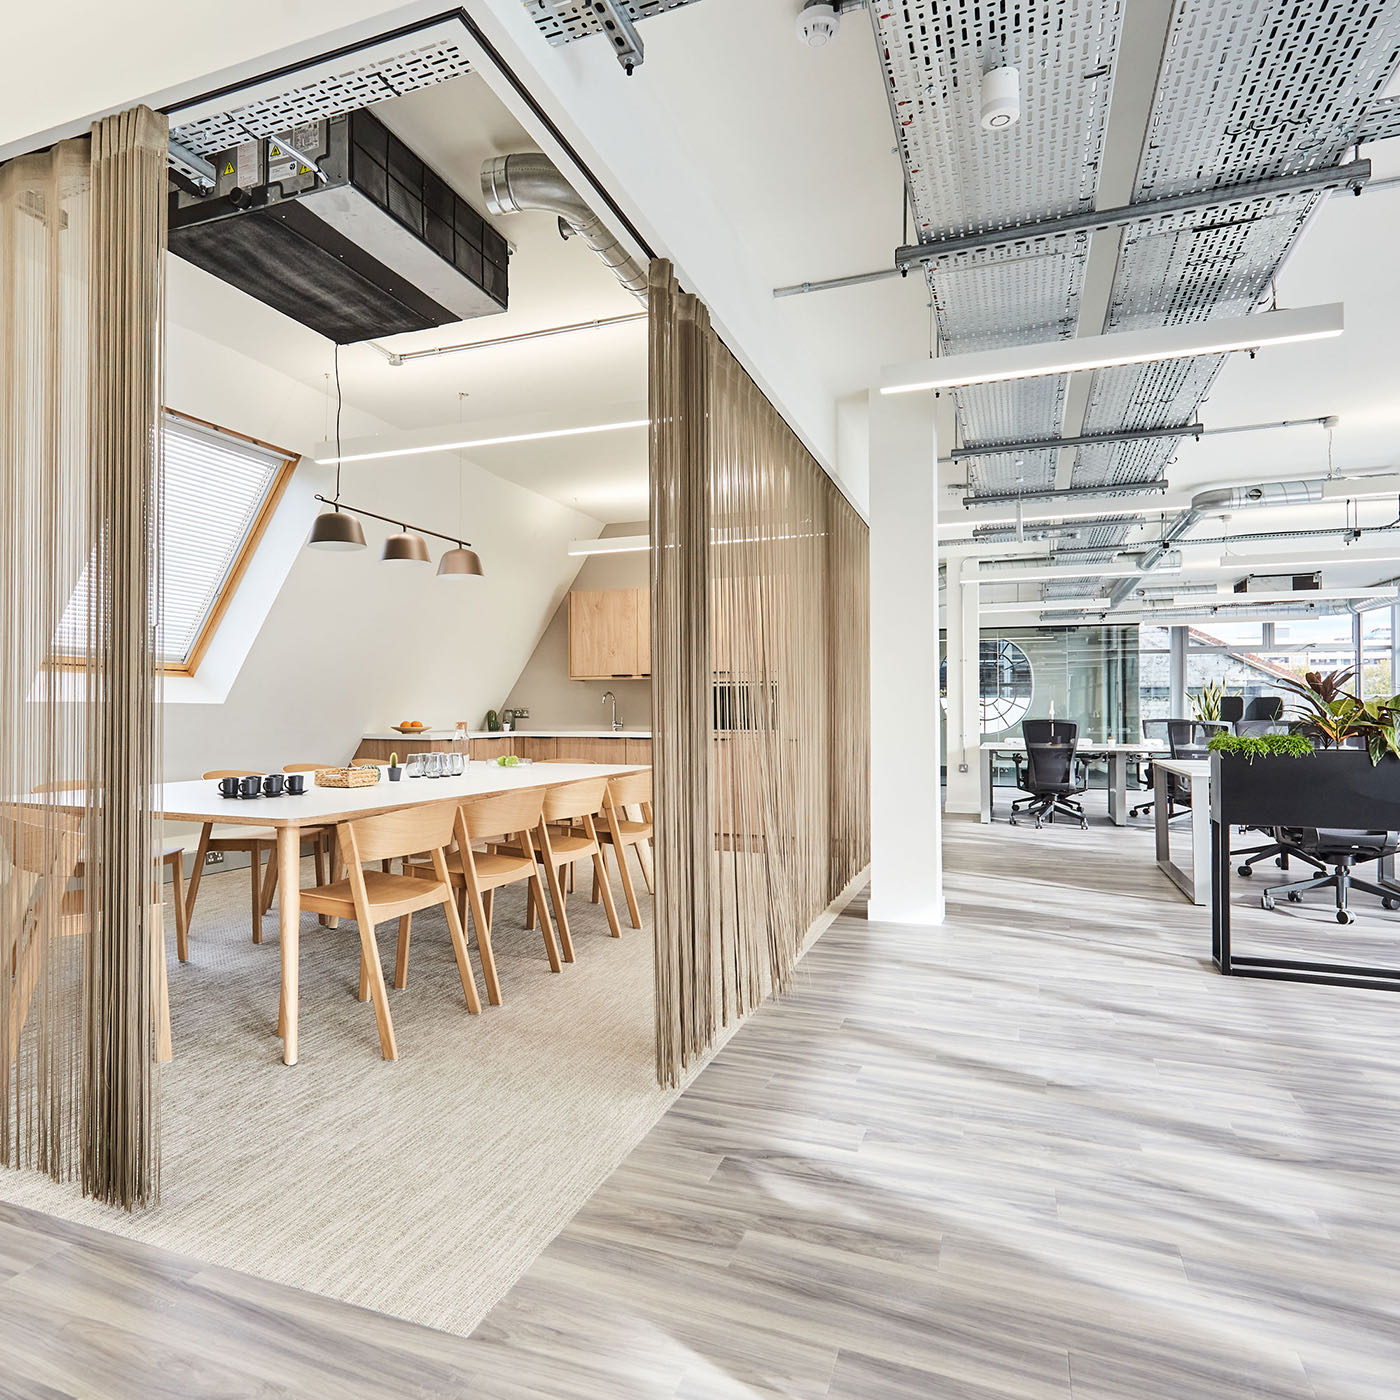 lighterman-house-office-london-8